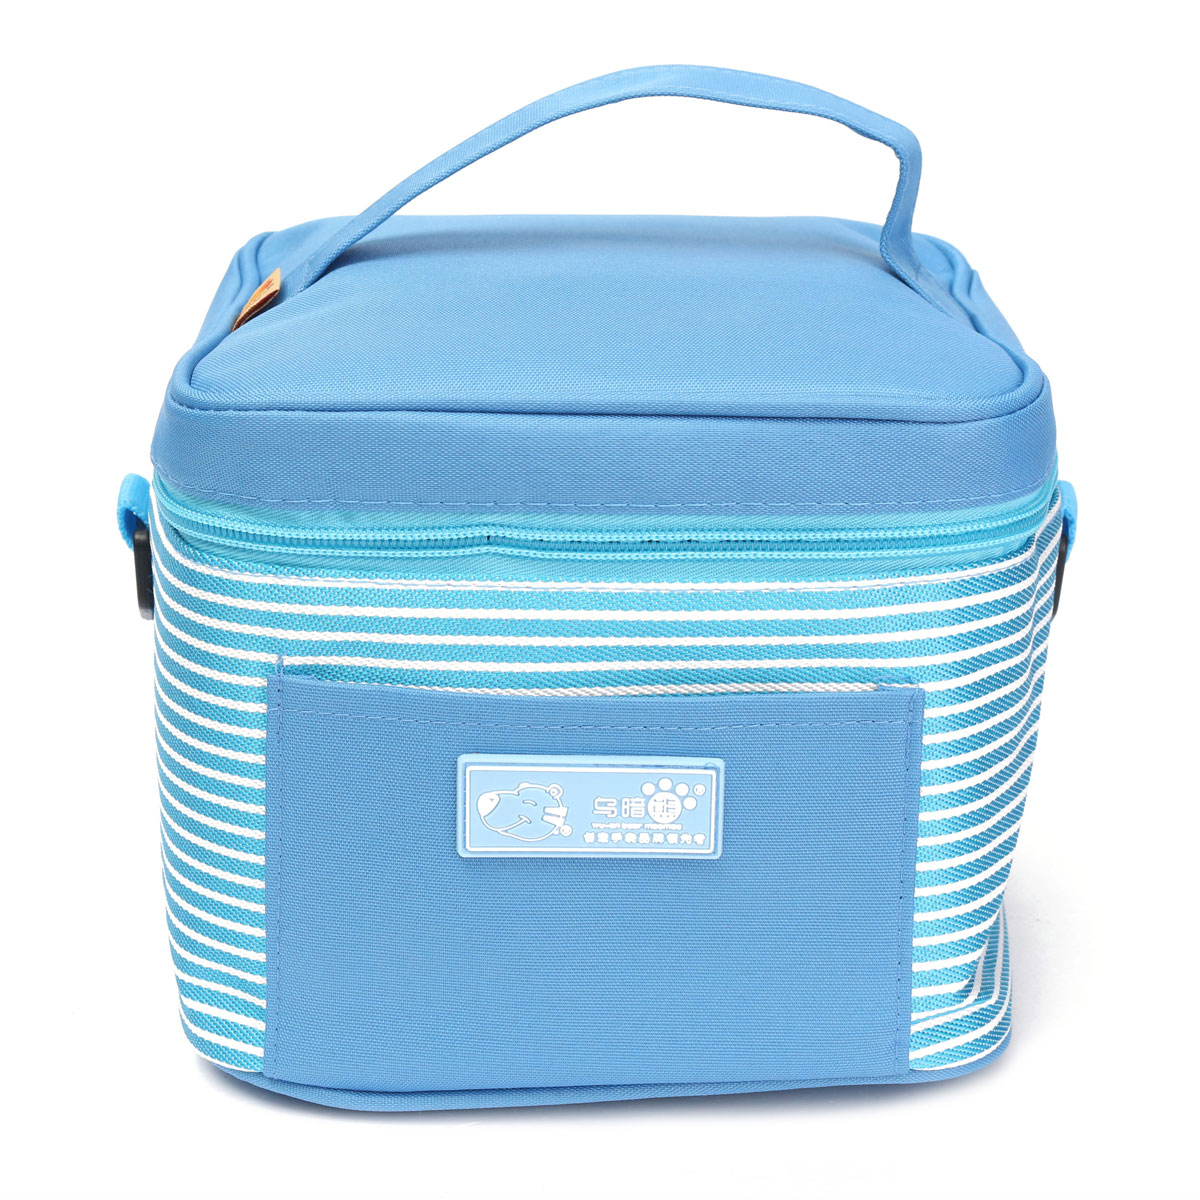 Portable Insulated Thermal Lunch Box Carry Tote Storage Bag Travel Picnic Case,light blue color